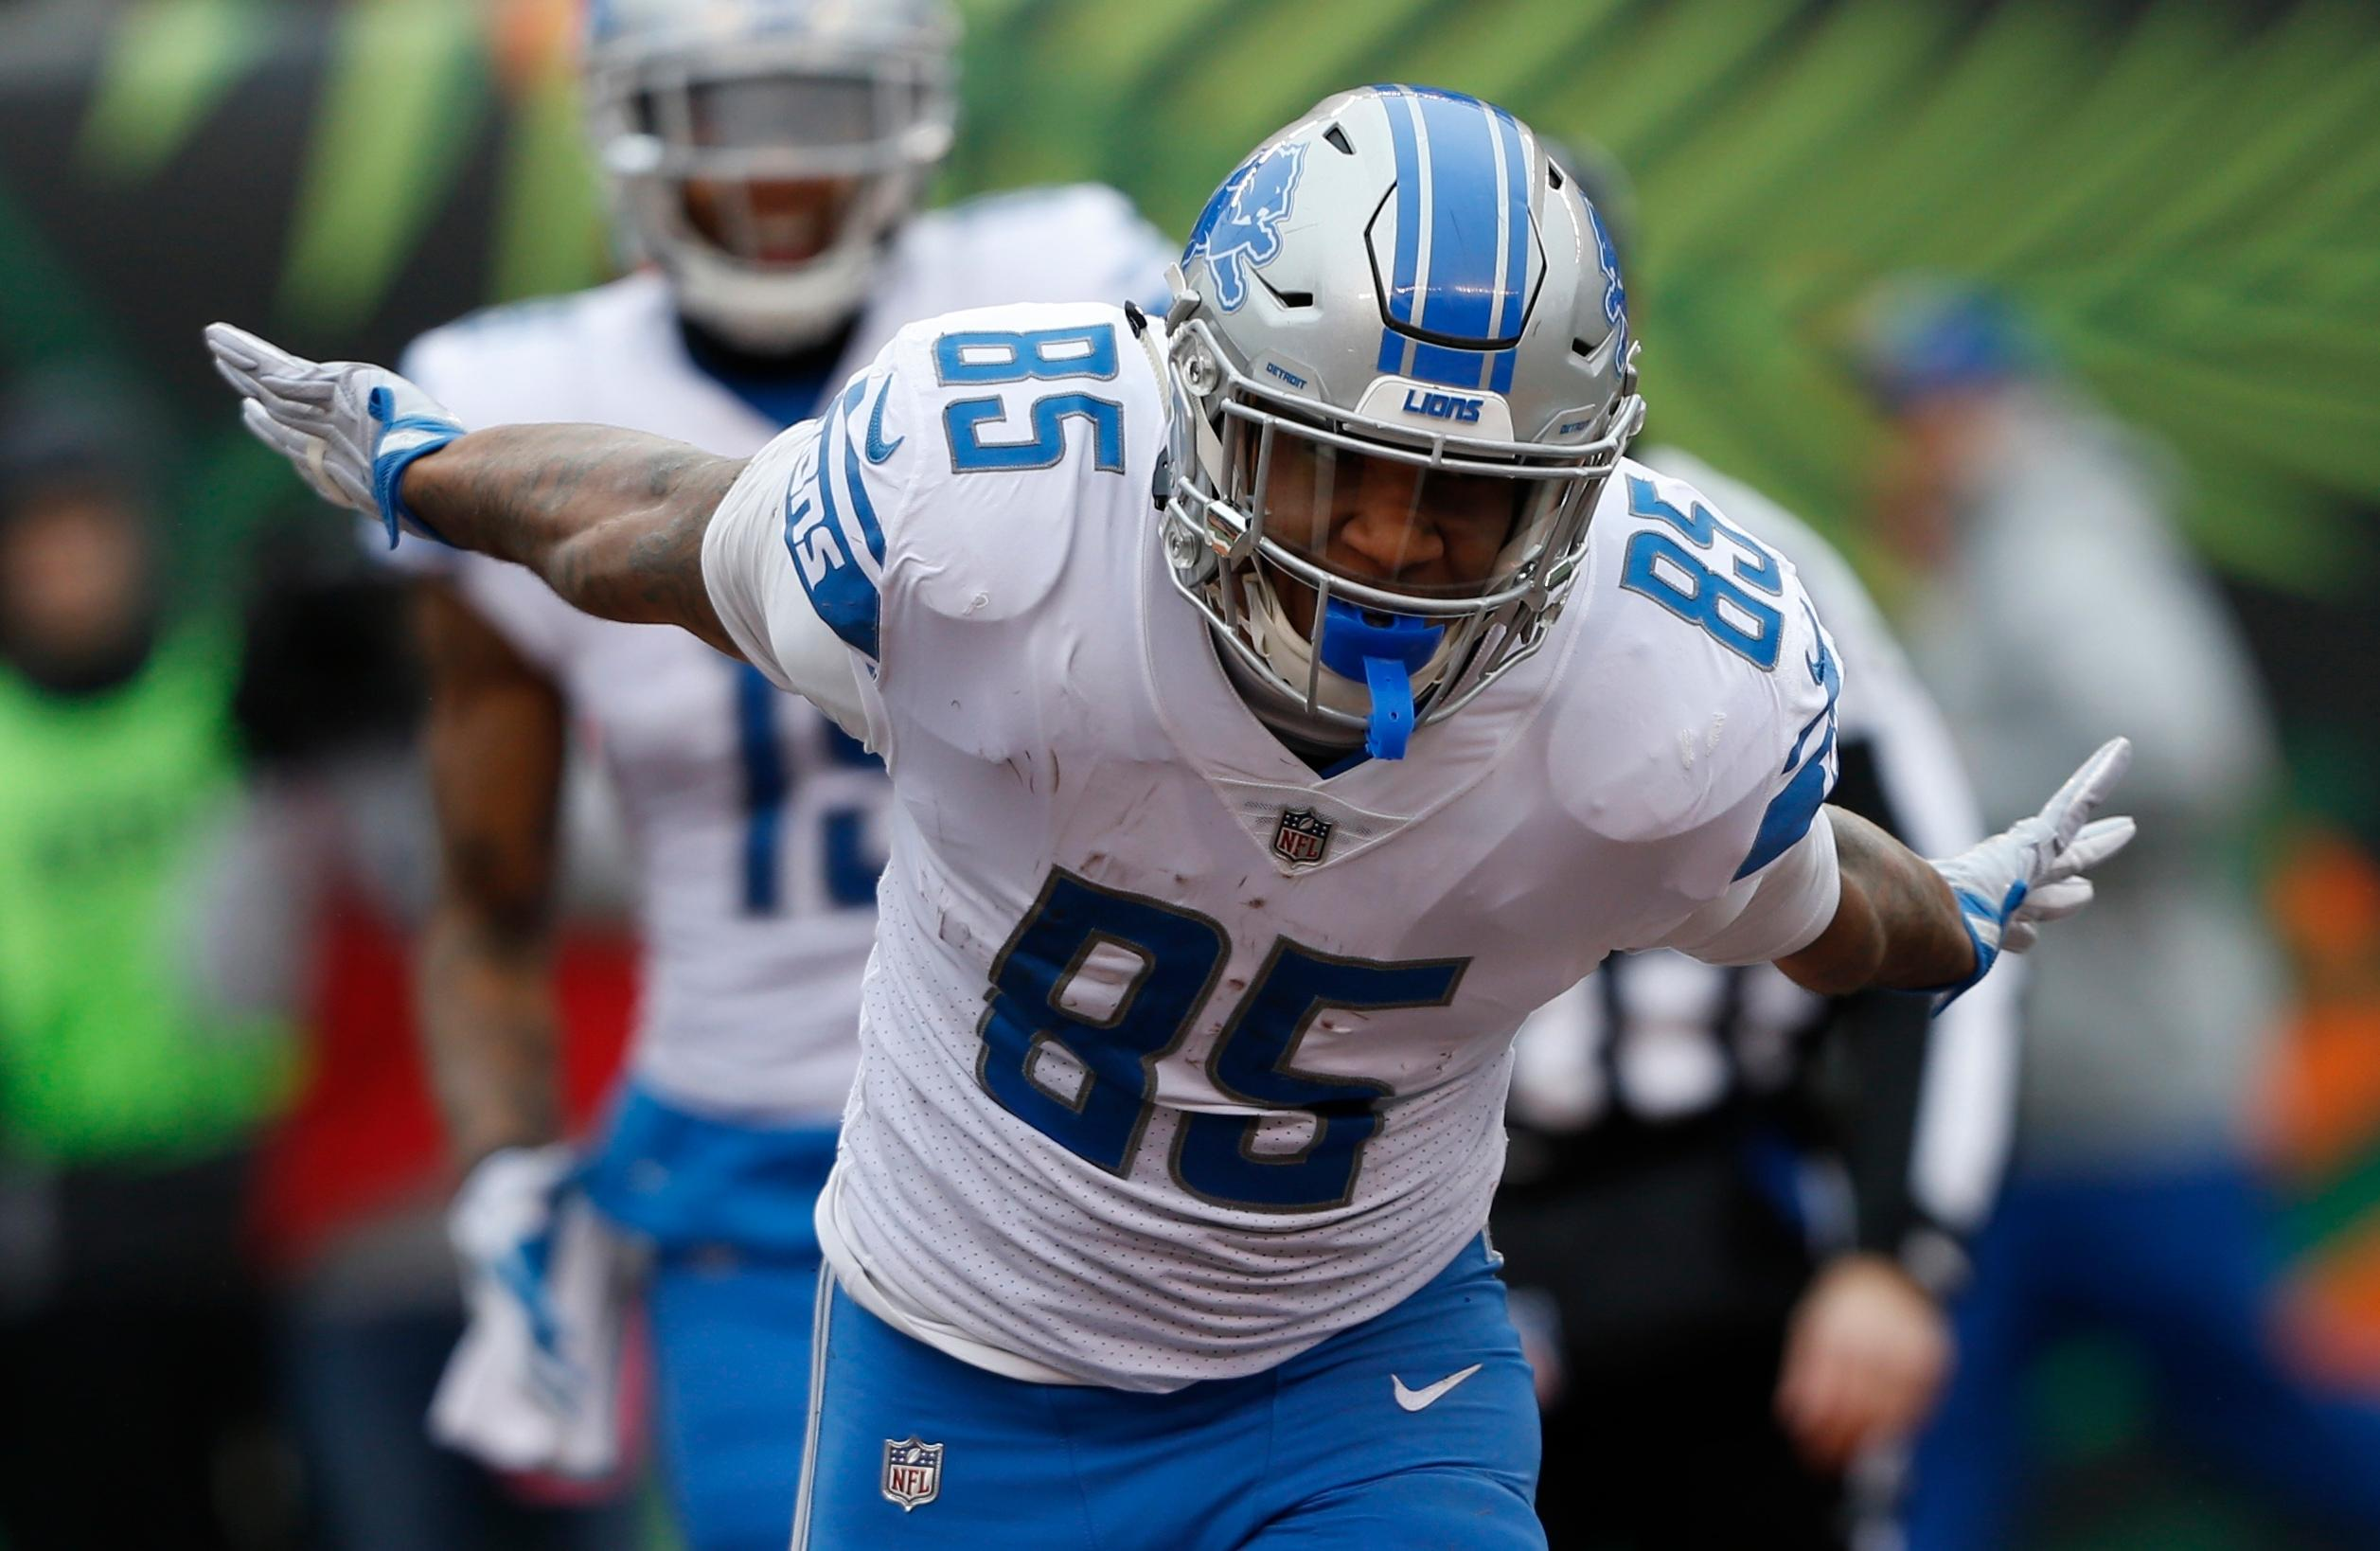 Detroit Lions tight end Eric Ebron (85) celebrates after his 33-yard reception for a touchdown during the first half of an NFL football game against the Cincinnati Bengals, Sunday, Dec. 24, 2017, in Cincinnati. (AP Photo/Frank Victores)